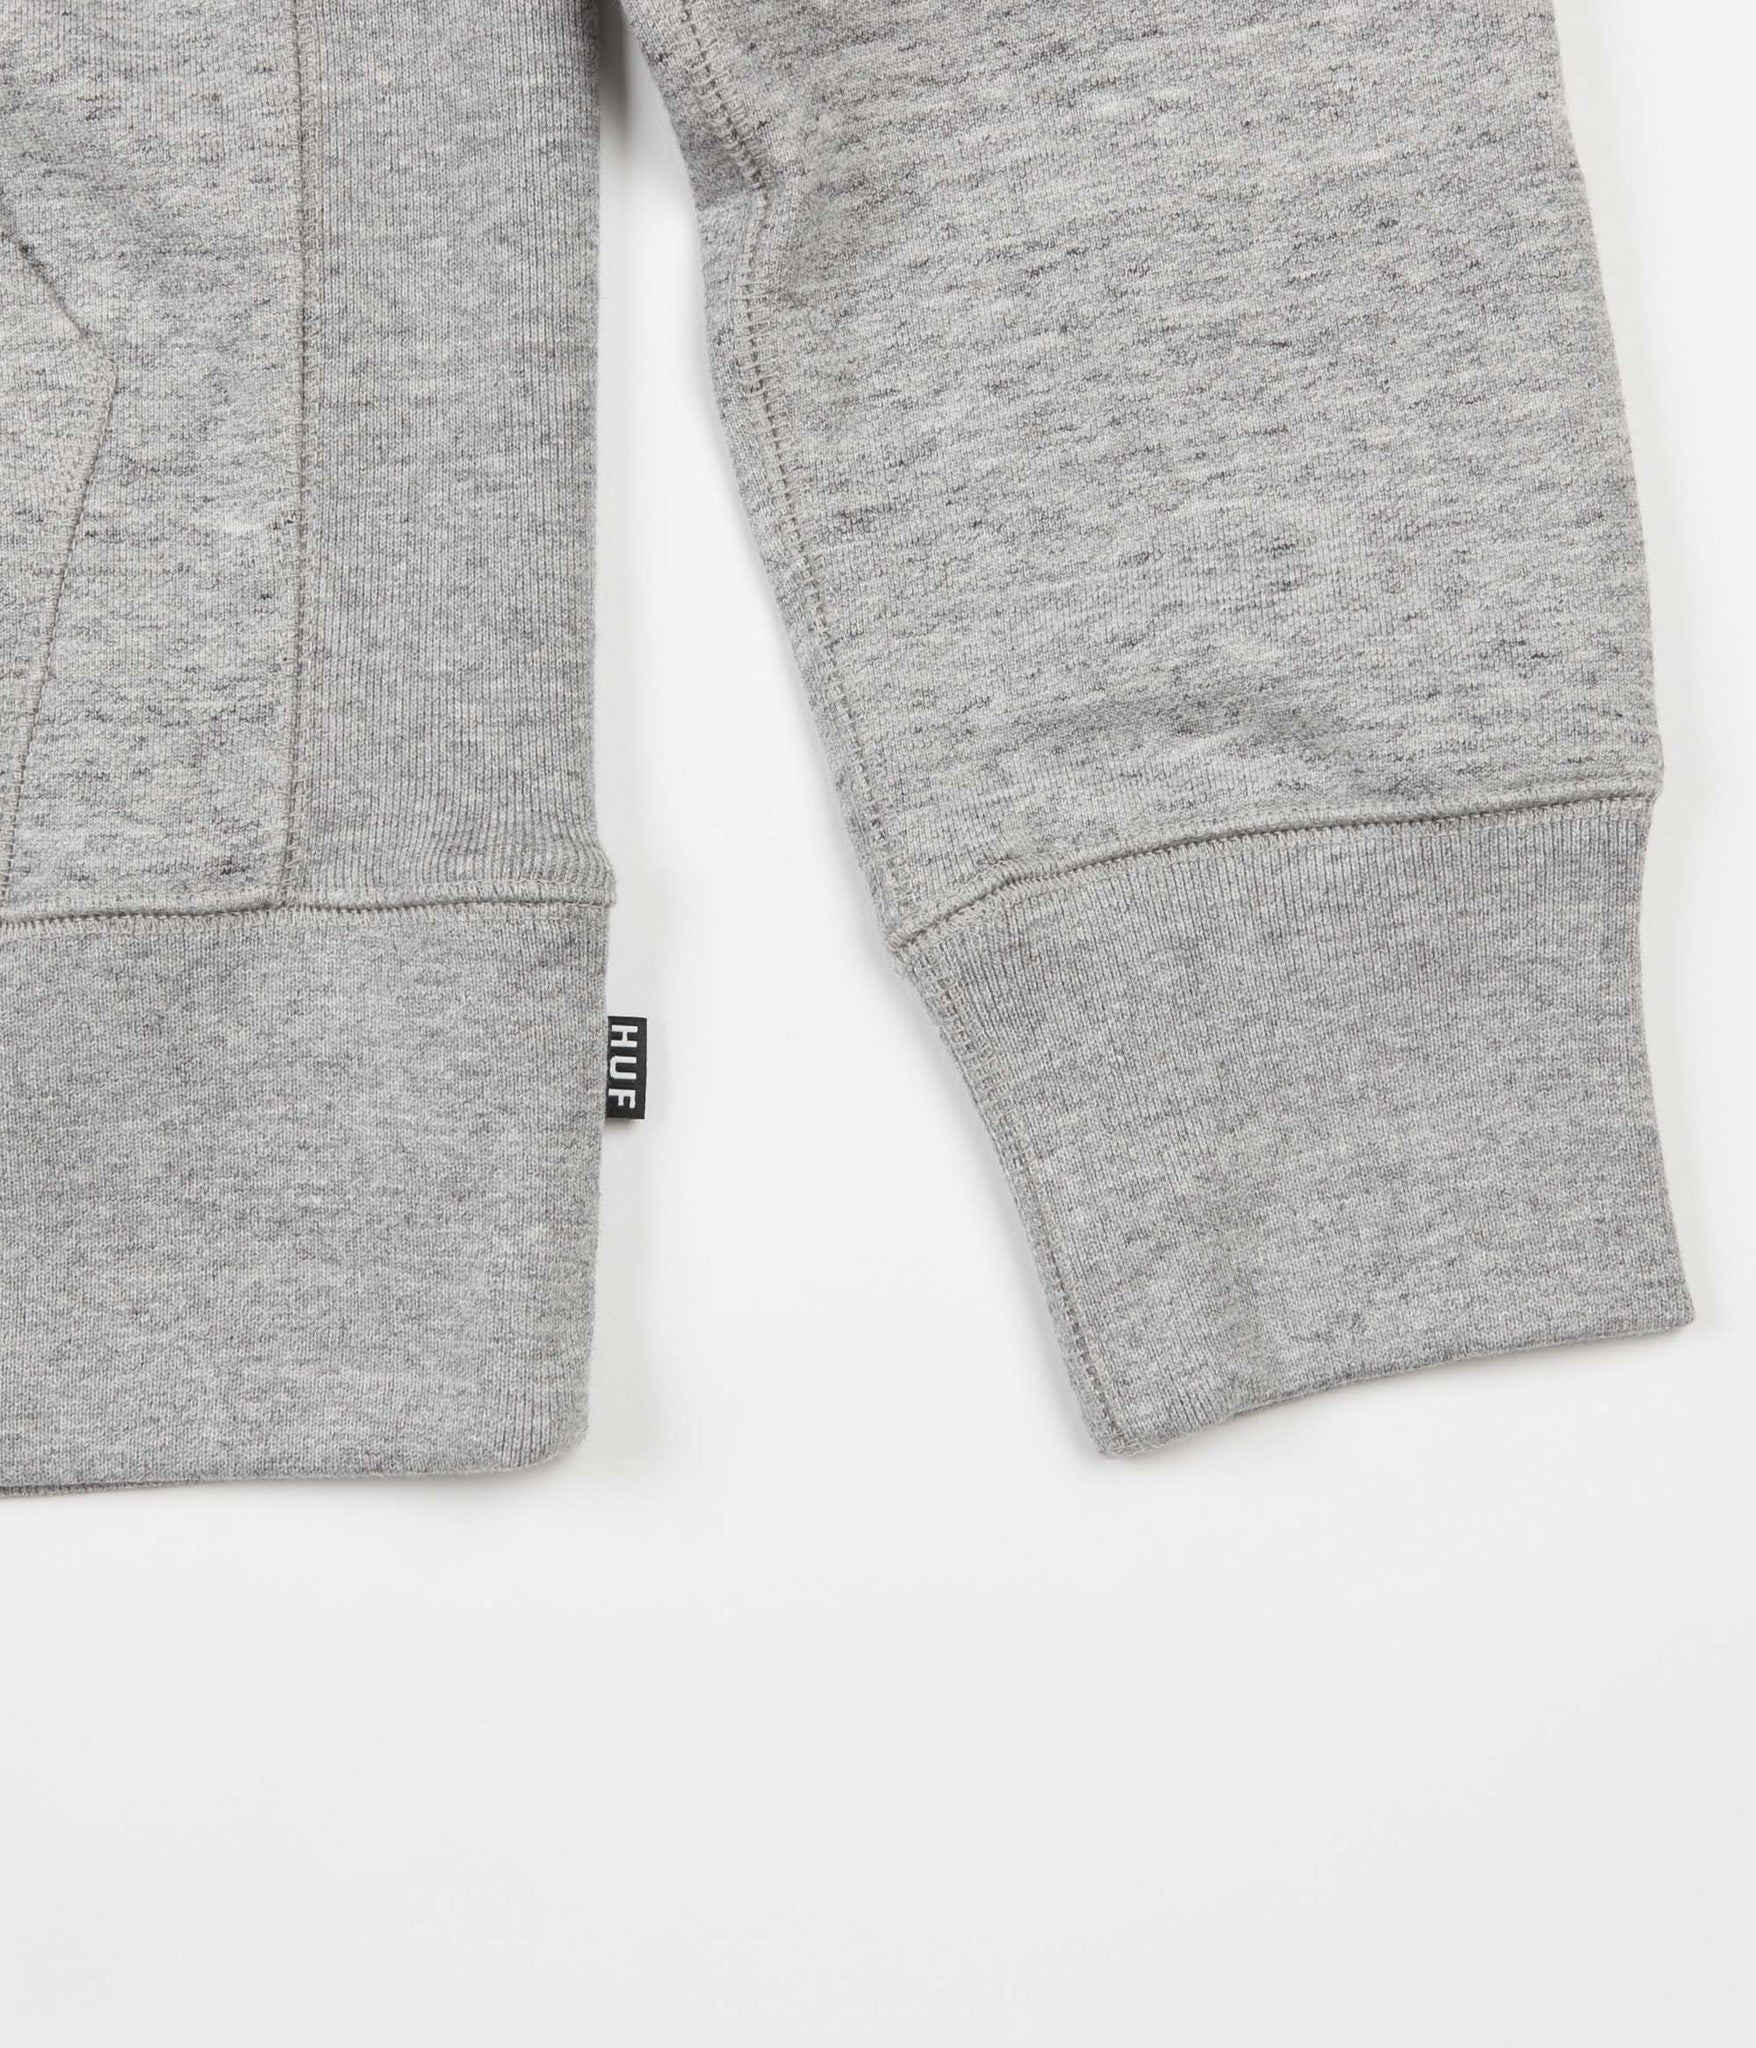 HUF State Pullover Hooded Sweatshirt - Grey Heather